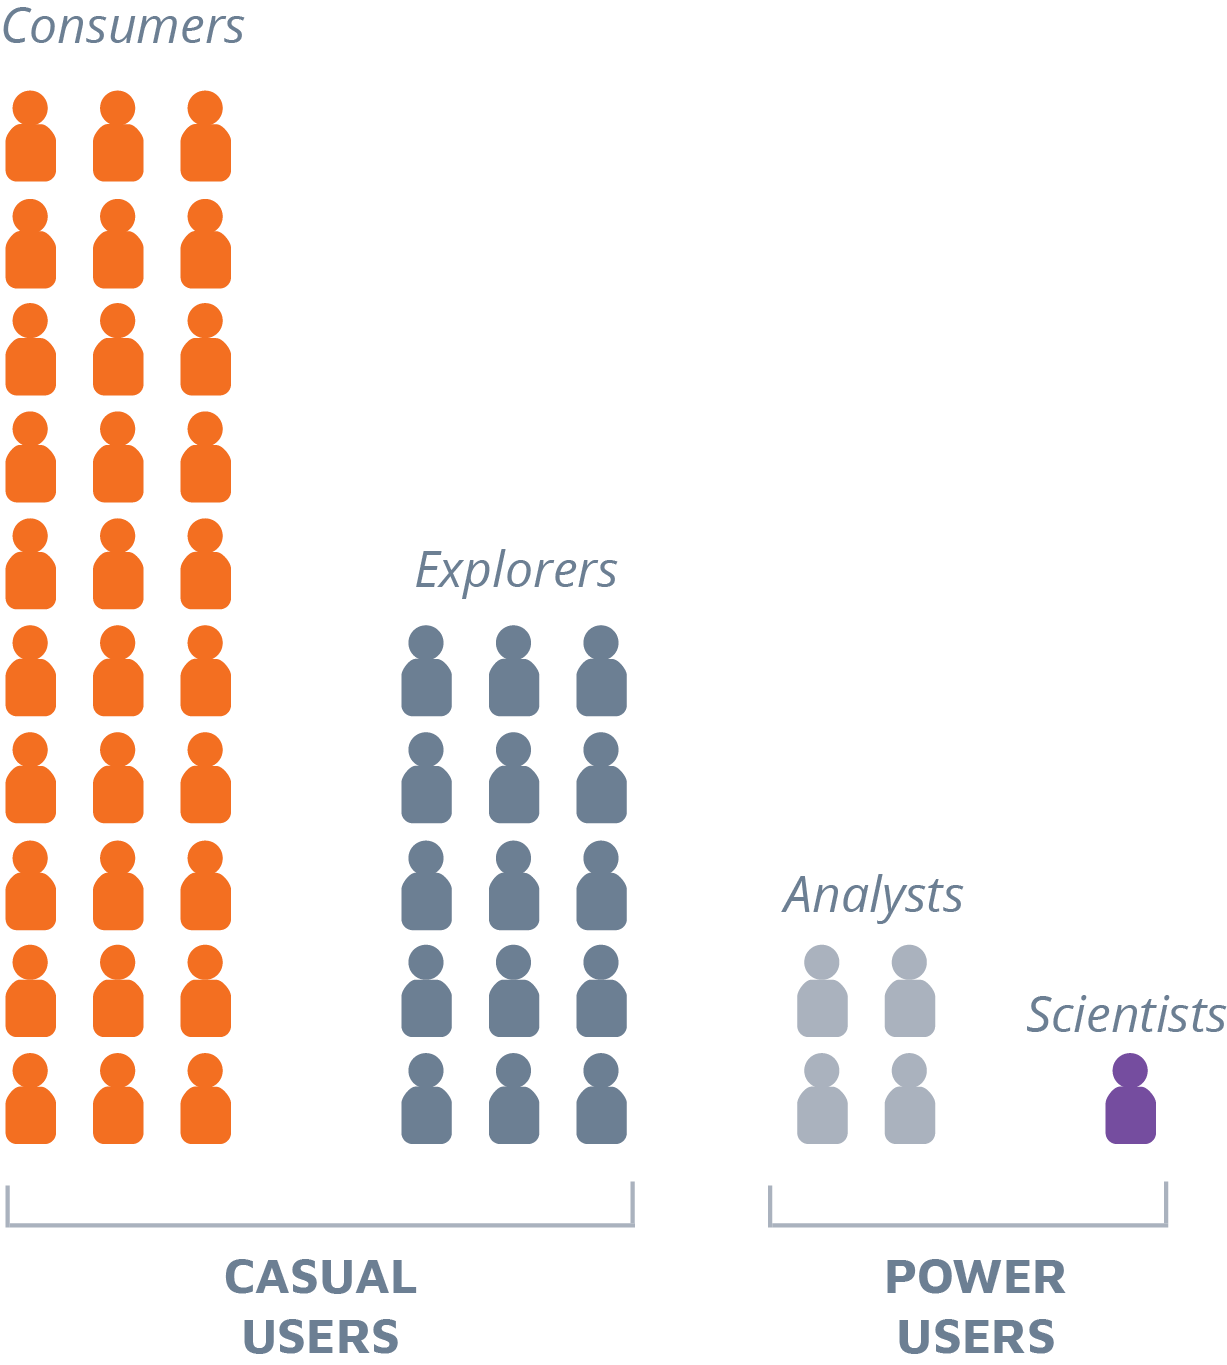 Breakdown of business intelligence knowledge workers into casual and power user subclasses.